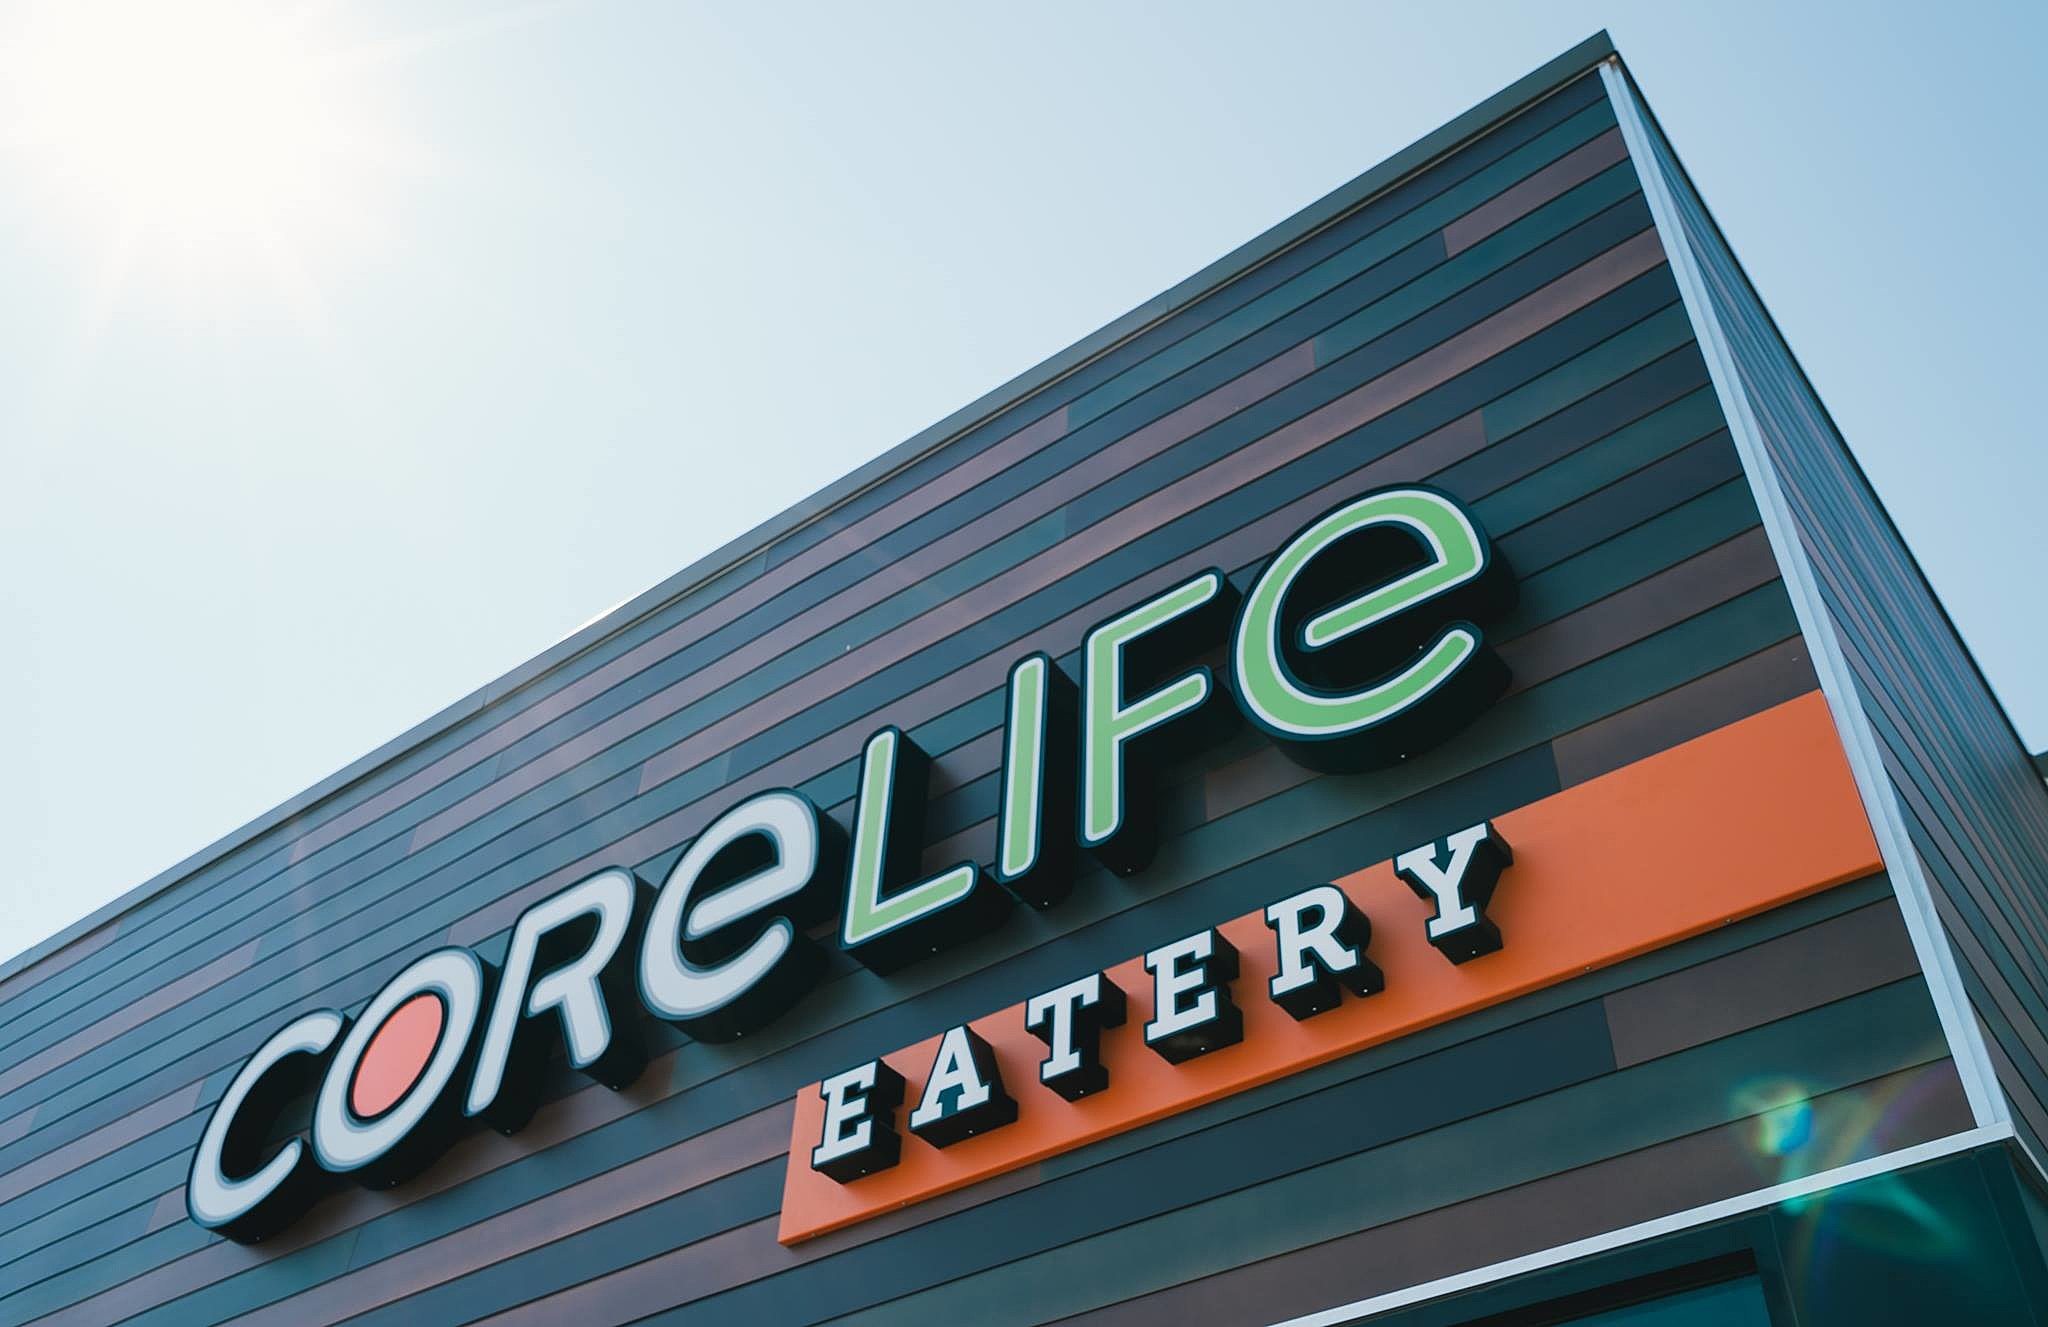 CoreLife Eatery Sign